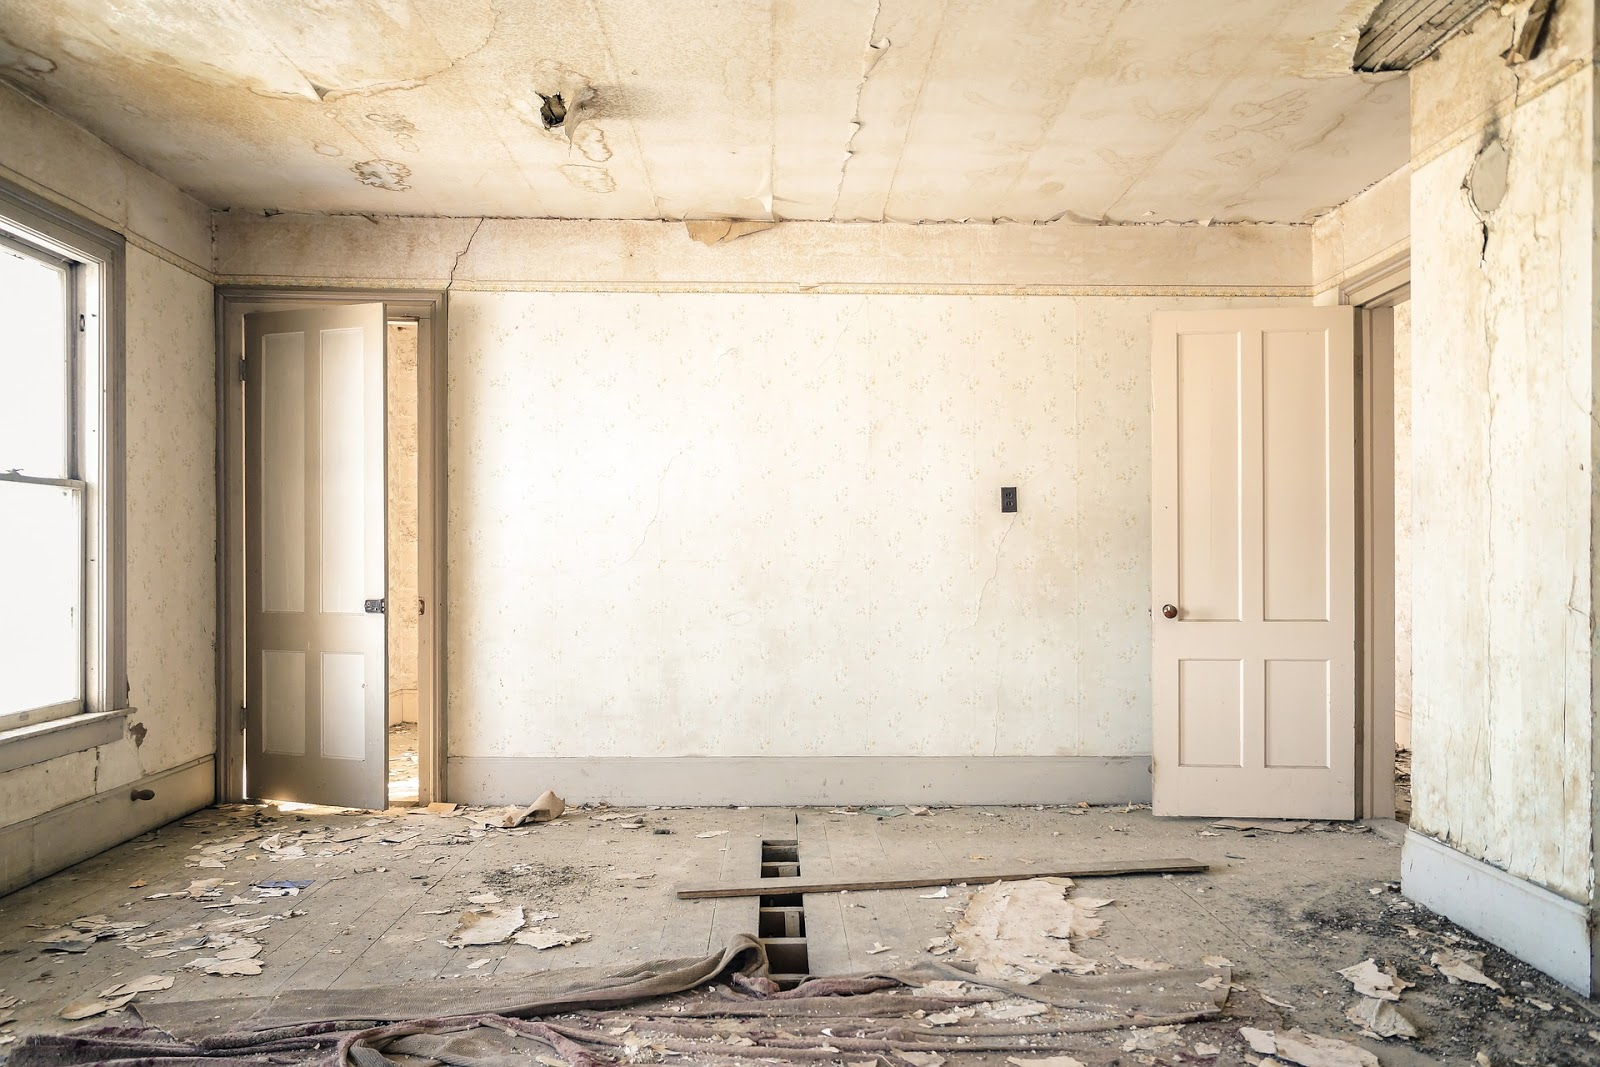 Our Renovation Journey So Far